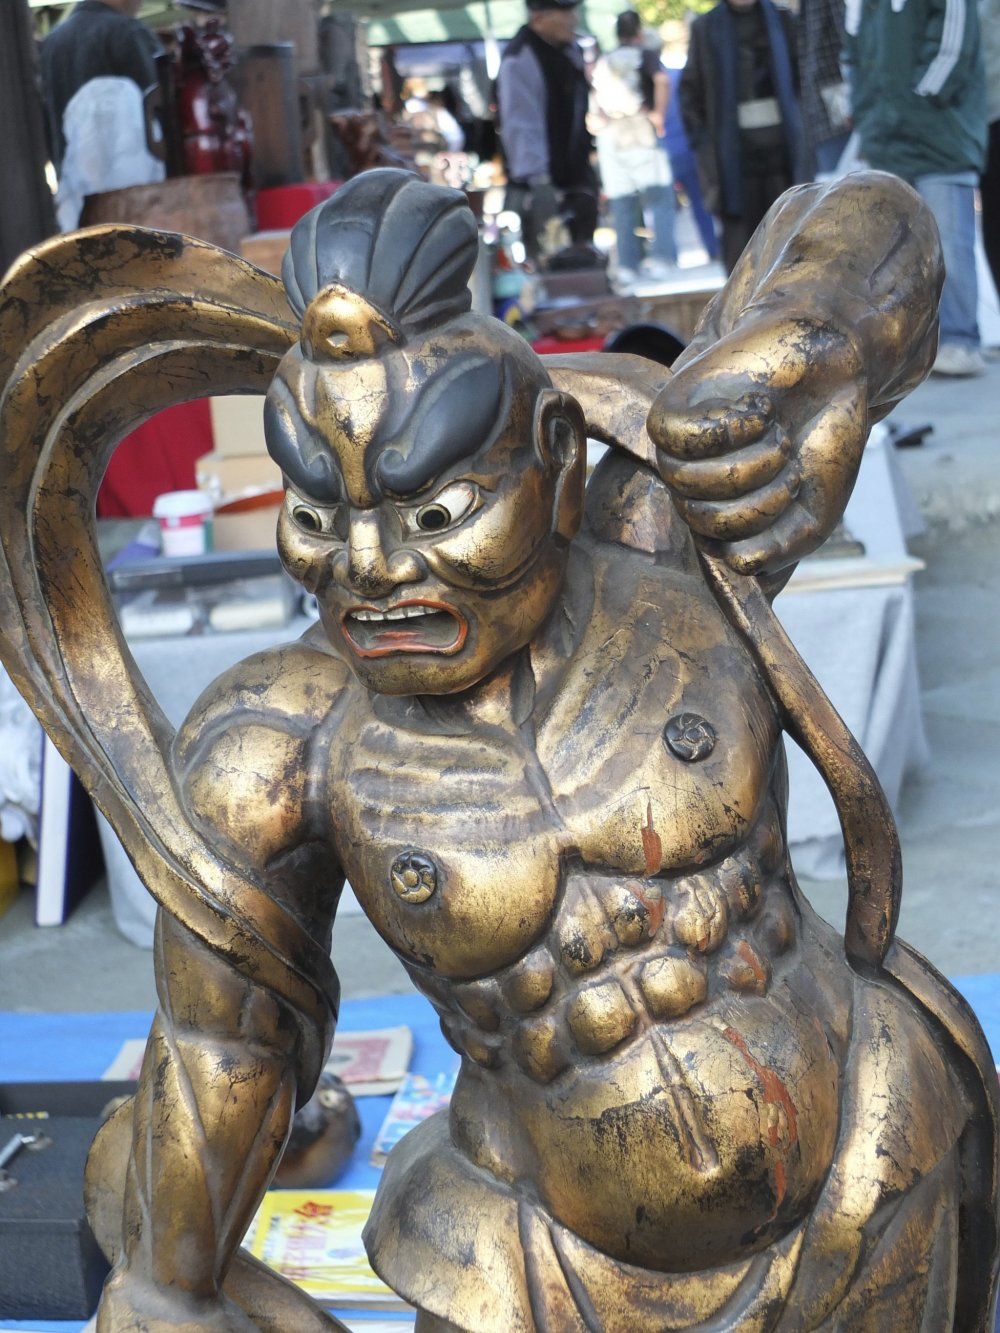 A beautiful wooden carving of a god in gold